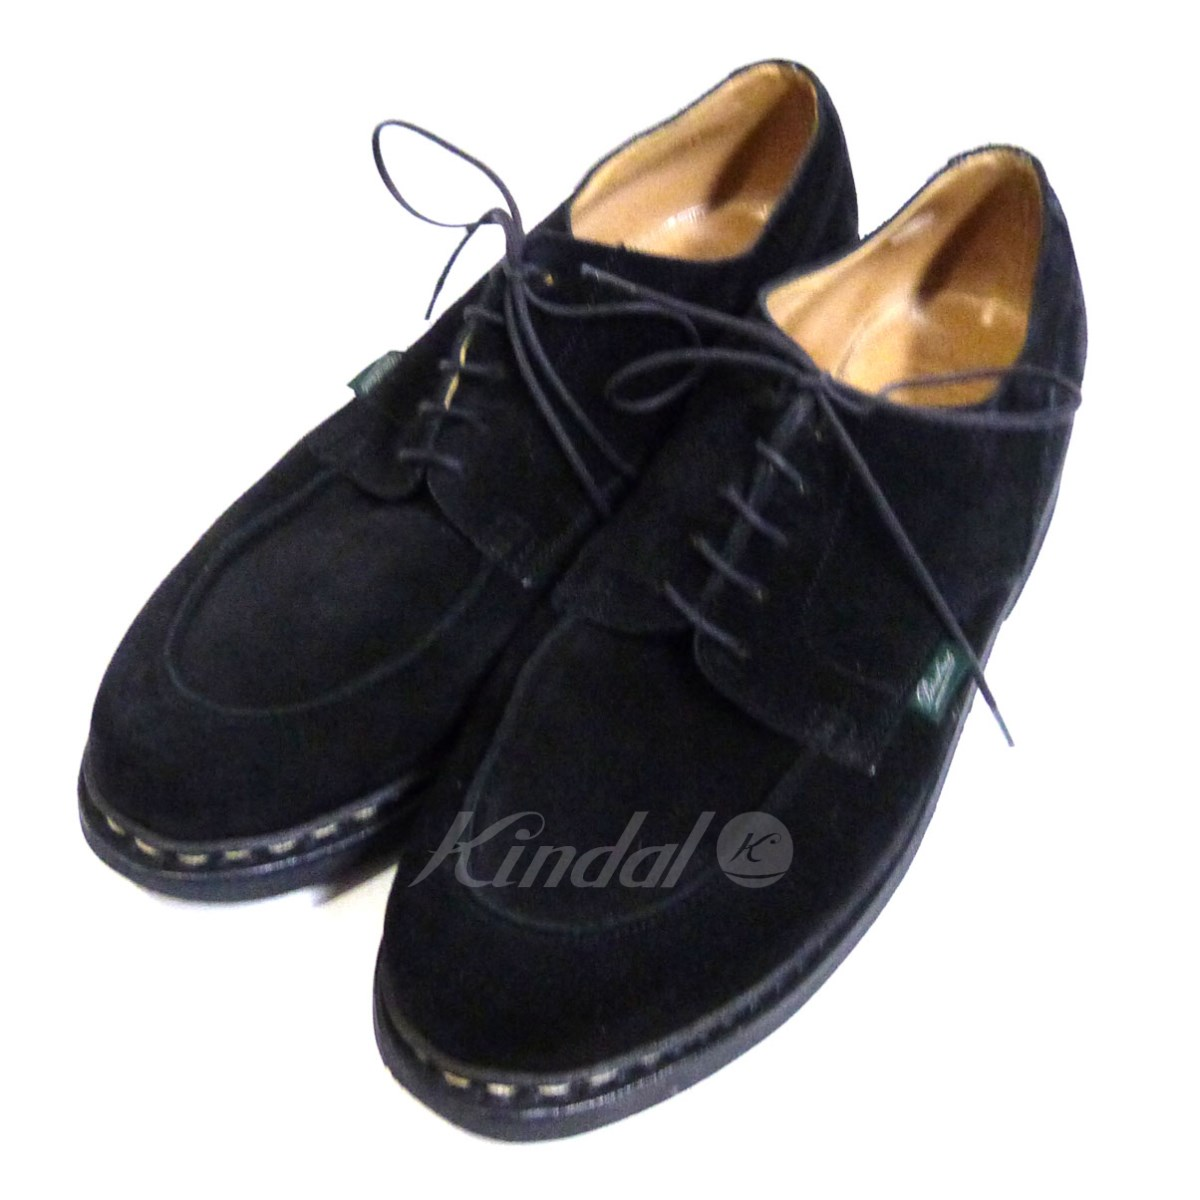 【中古】Paraboot × BEAUTY&YOUTH UNITED ARROWS 「CHAMBORD」Uチップスウェードシューズ 【送料無料】 【049599】 【KIND1641】